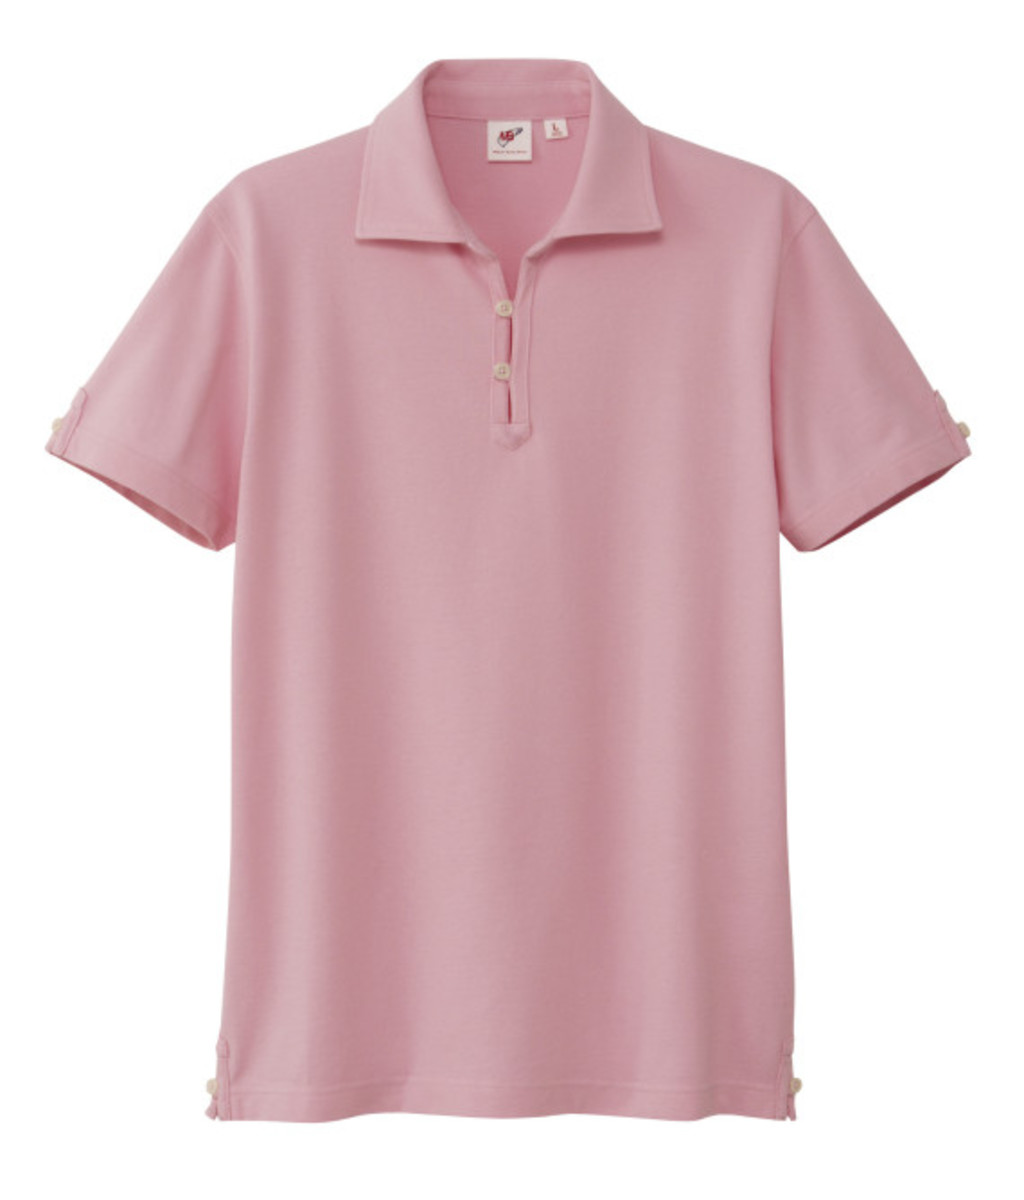 michael-bastian-x-uniqlo-mens-polo-shirt-collection-2013-05